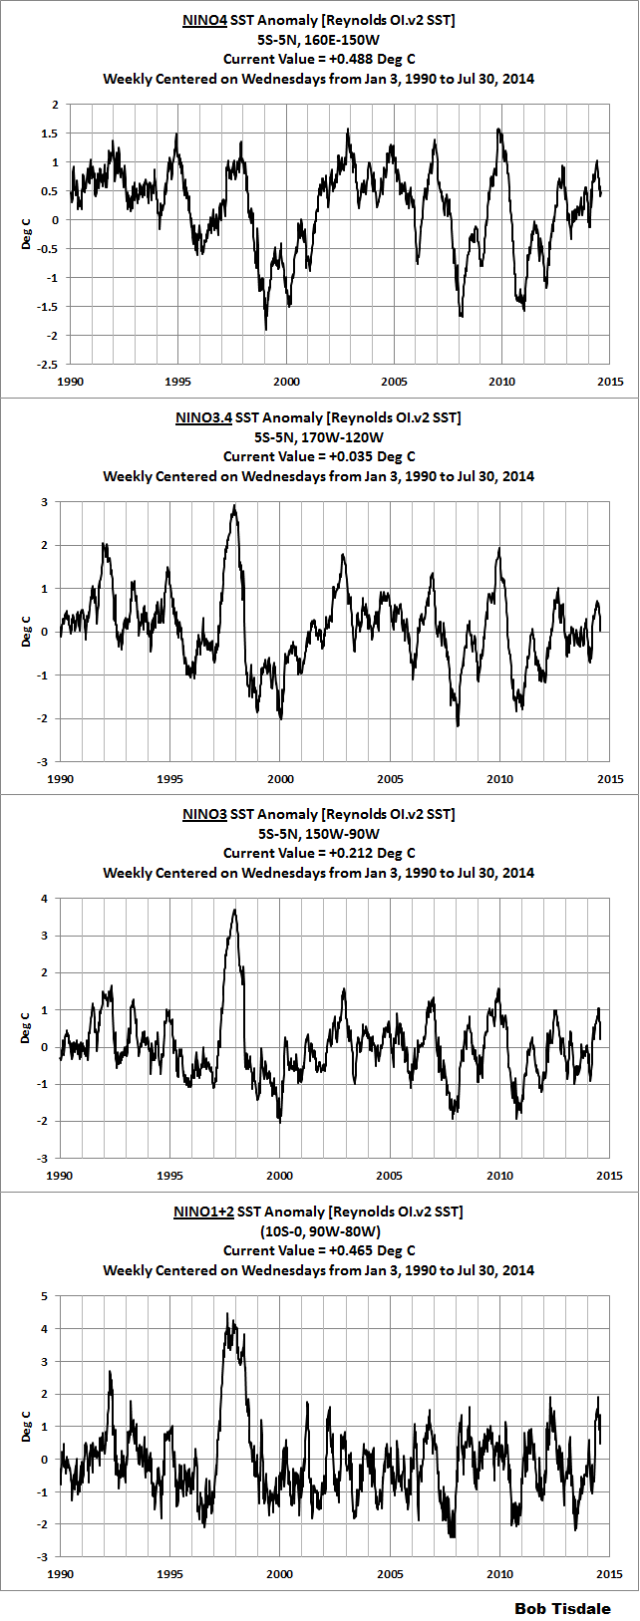 ENSO Indices